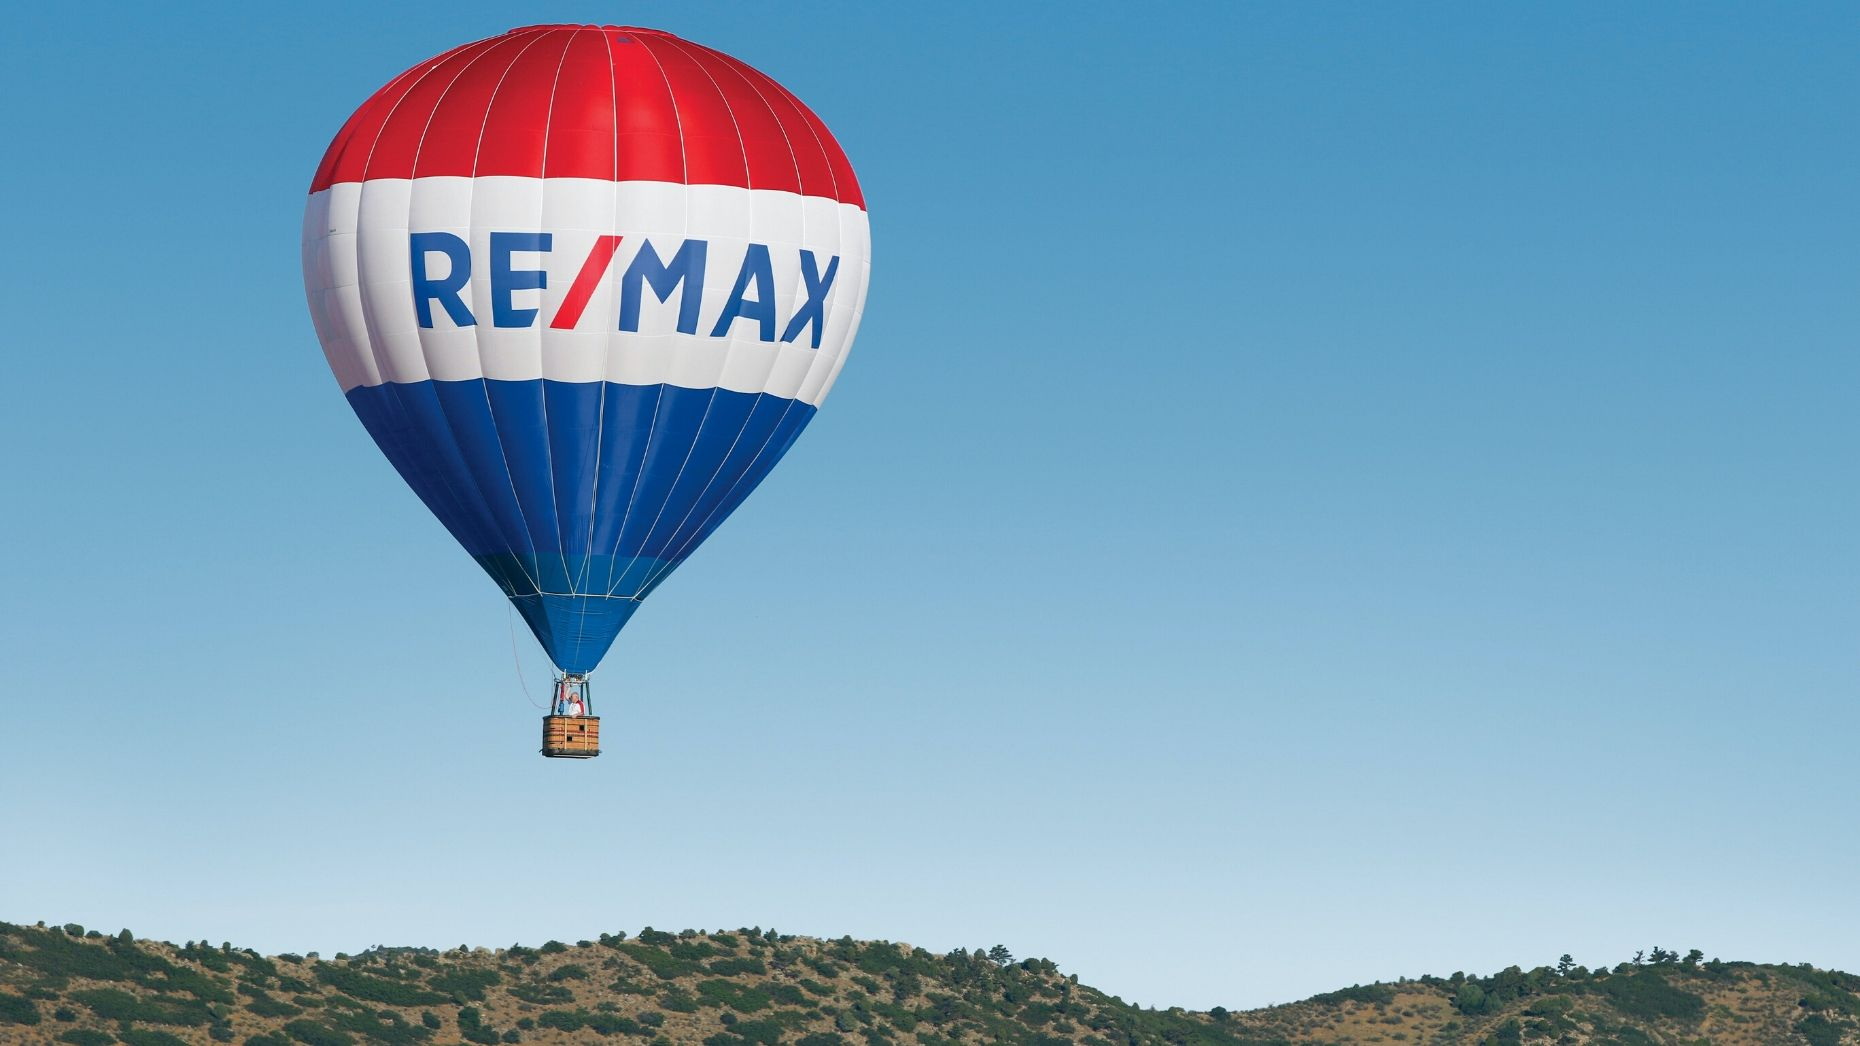 RE/MAX adds hospitality veteran to board of directors